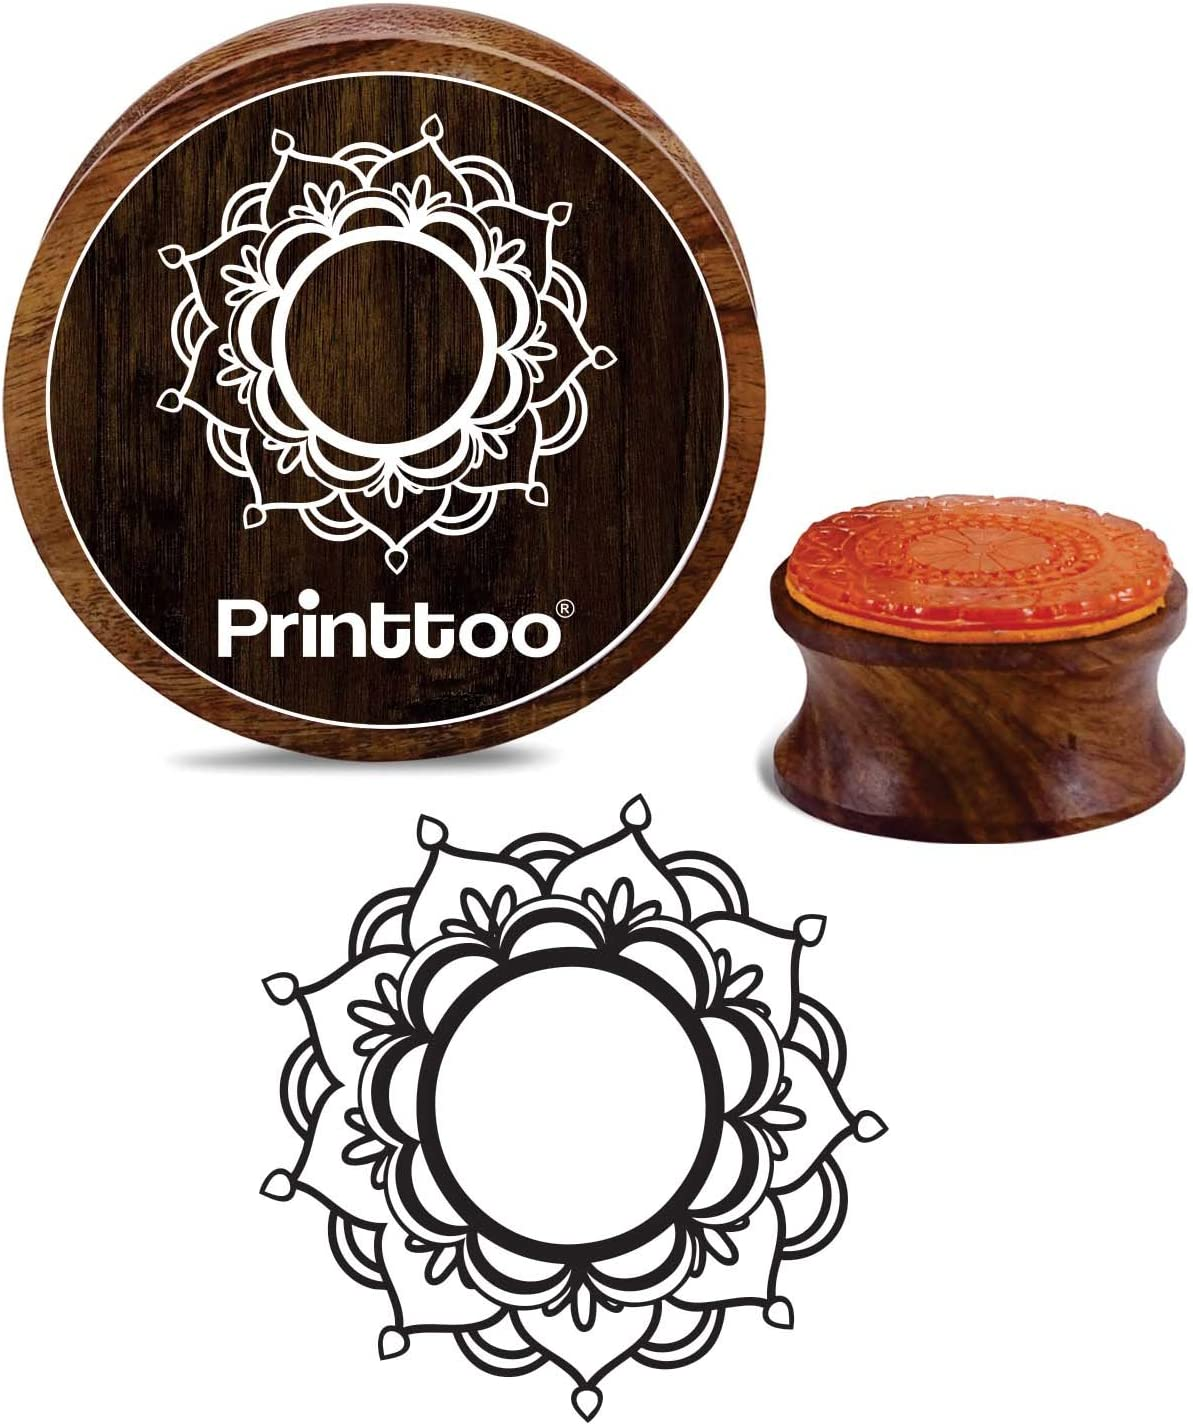 Printtoo Card Making Wooden Rubber Stamp Round Floral Mandala Pattern Scrap-Booking Stamps-3 Inch